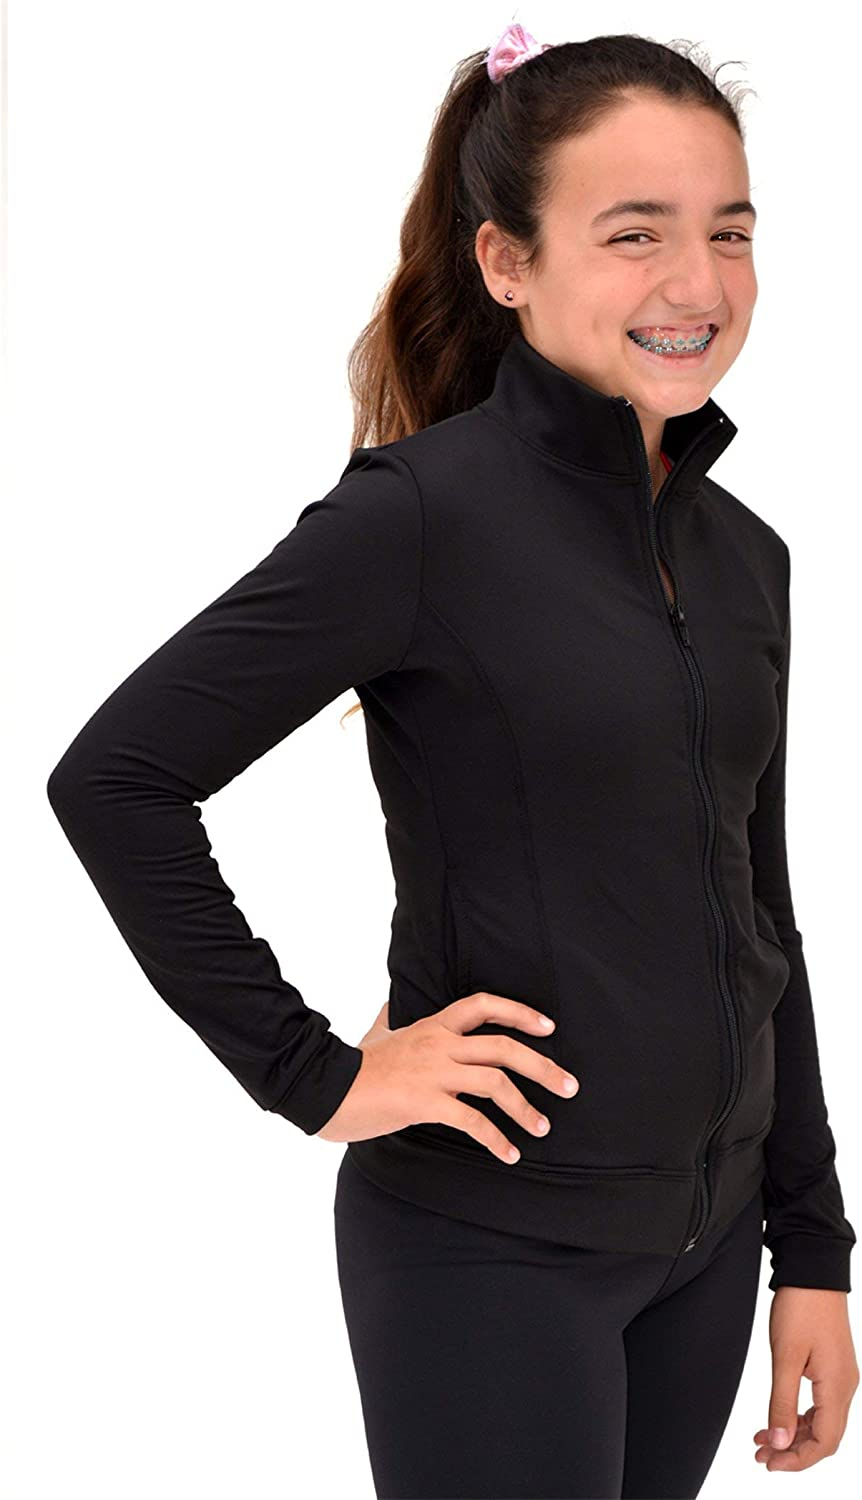 Stretch is Comfort Girl's and Women's Dance Cheer Cotton Warm Up Jacket